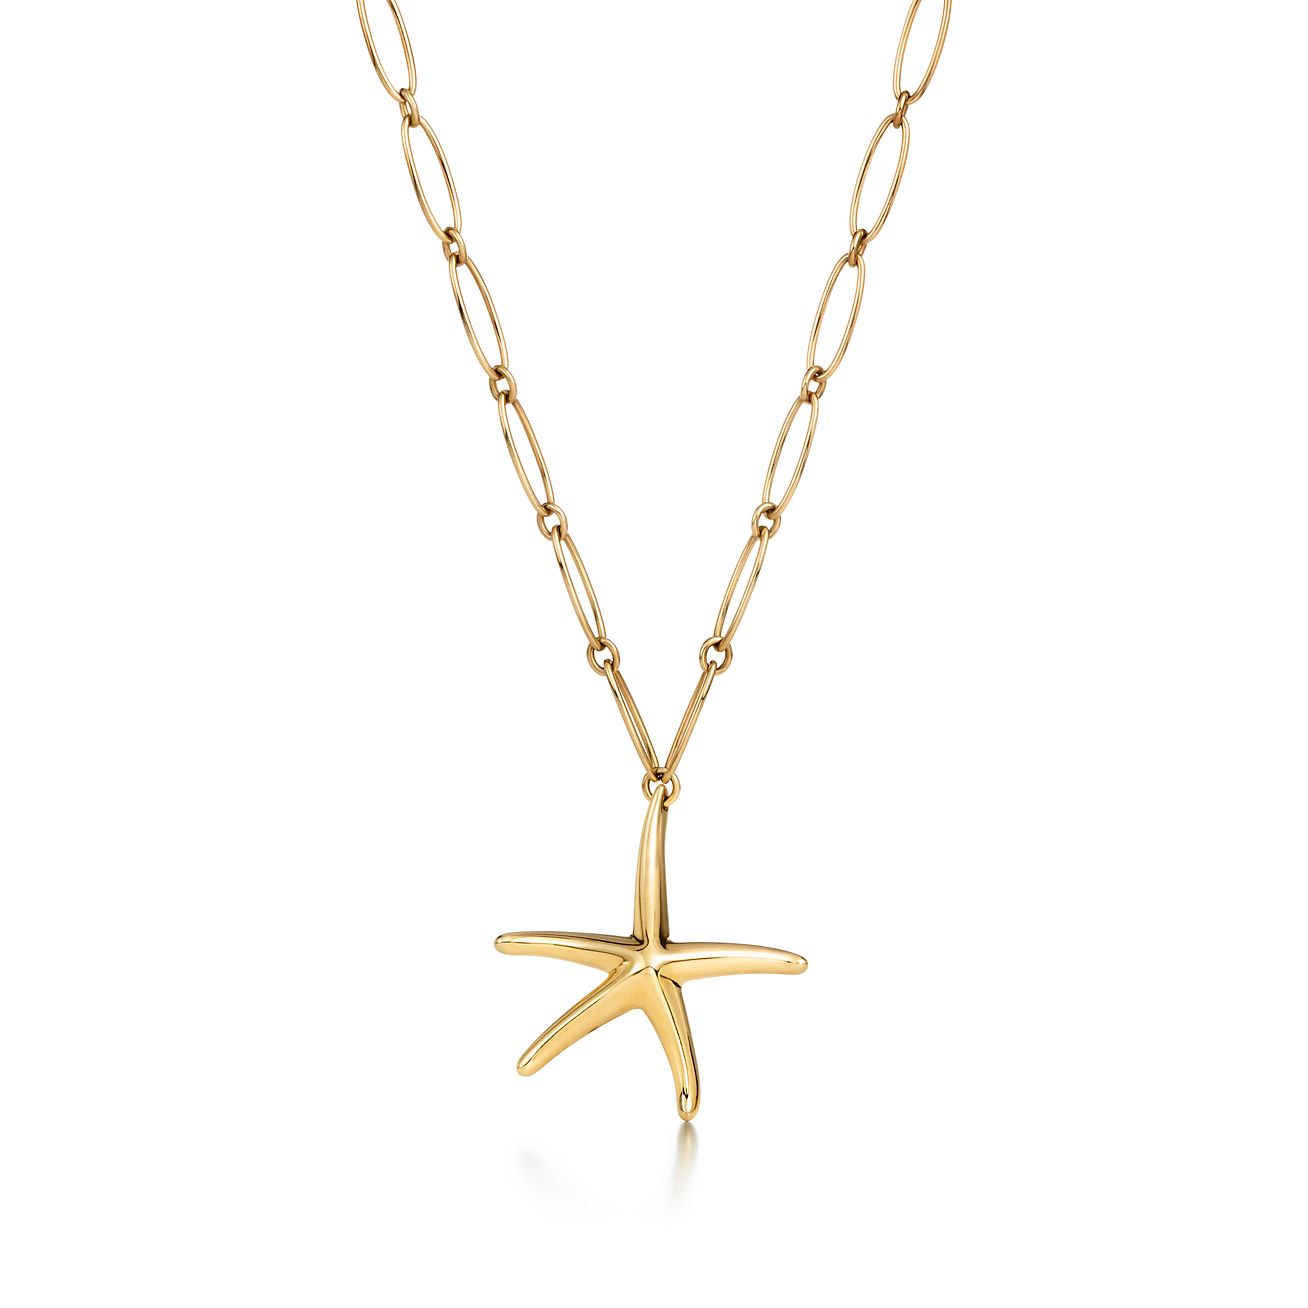 Gold starfish necklace necklace wallpaper gallerychitrak gold starfish necklace mozeypictures Choice Image